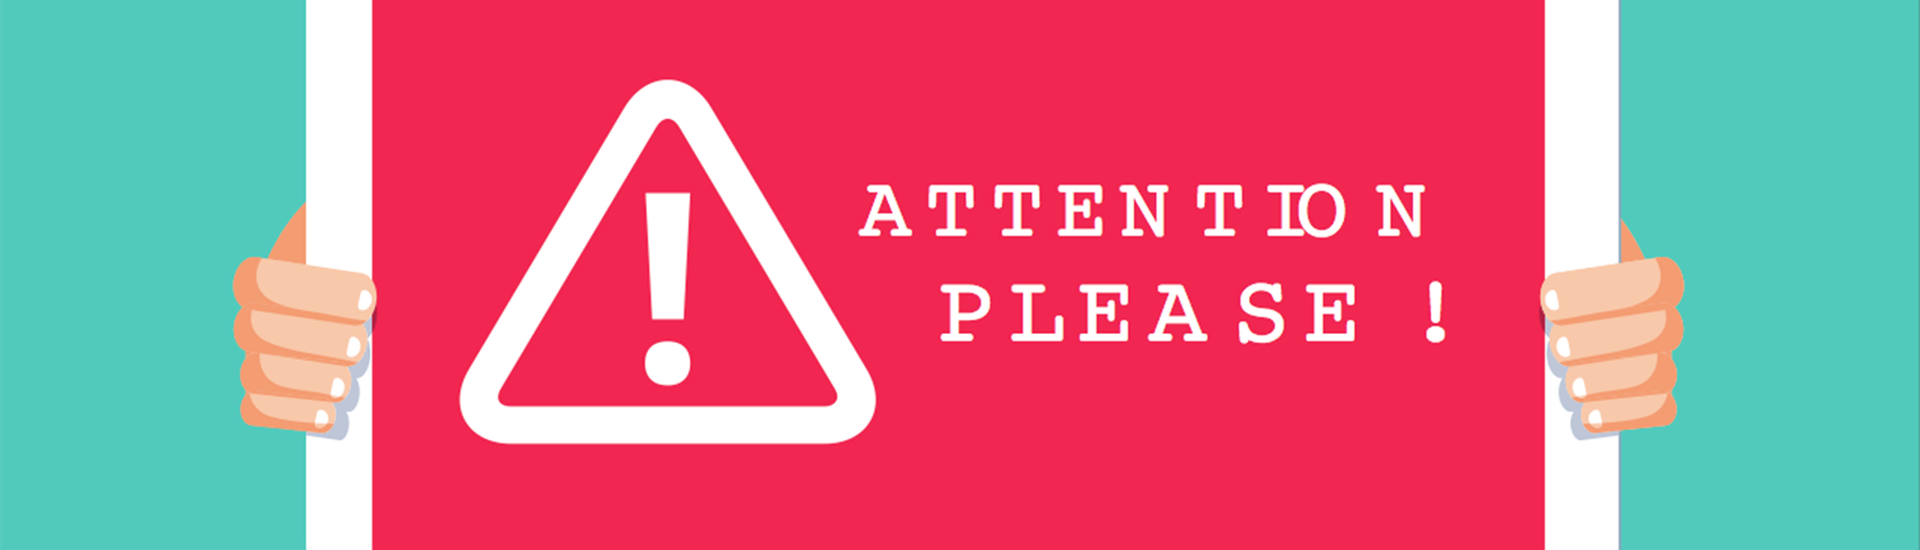 We were experiencing technical issues with dues payments online. The issue is fixed, but if you have issues, please call (803) 576-3803.